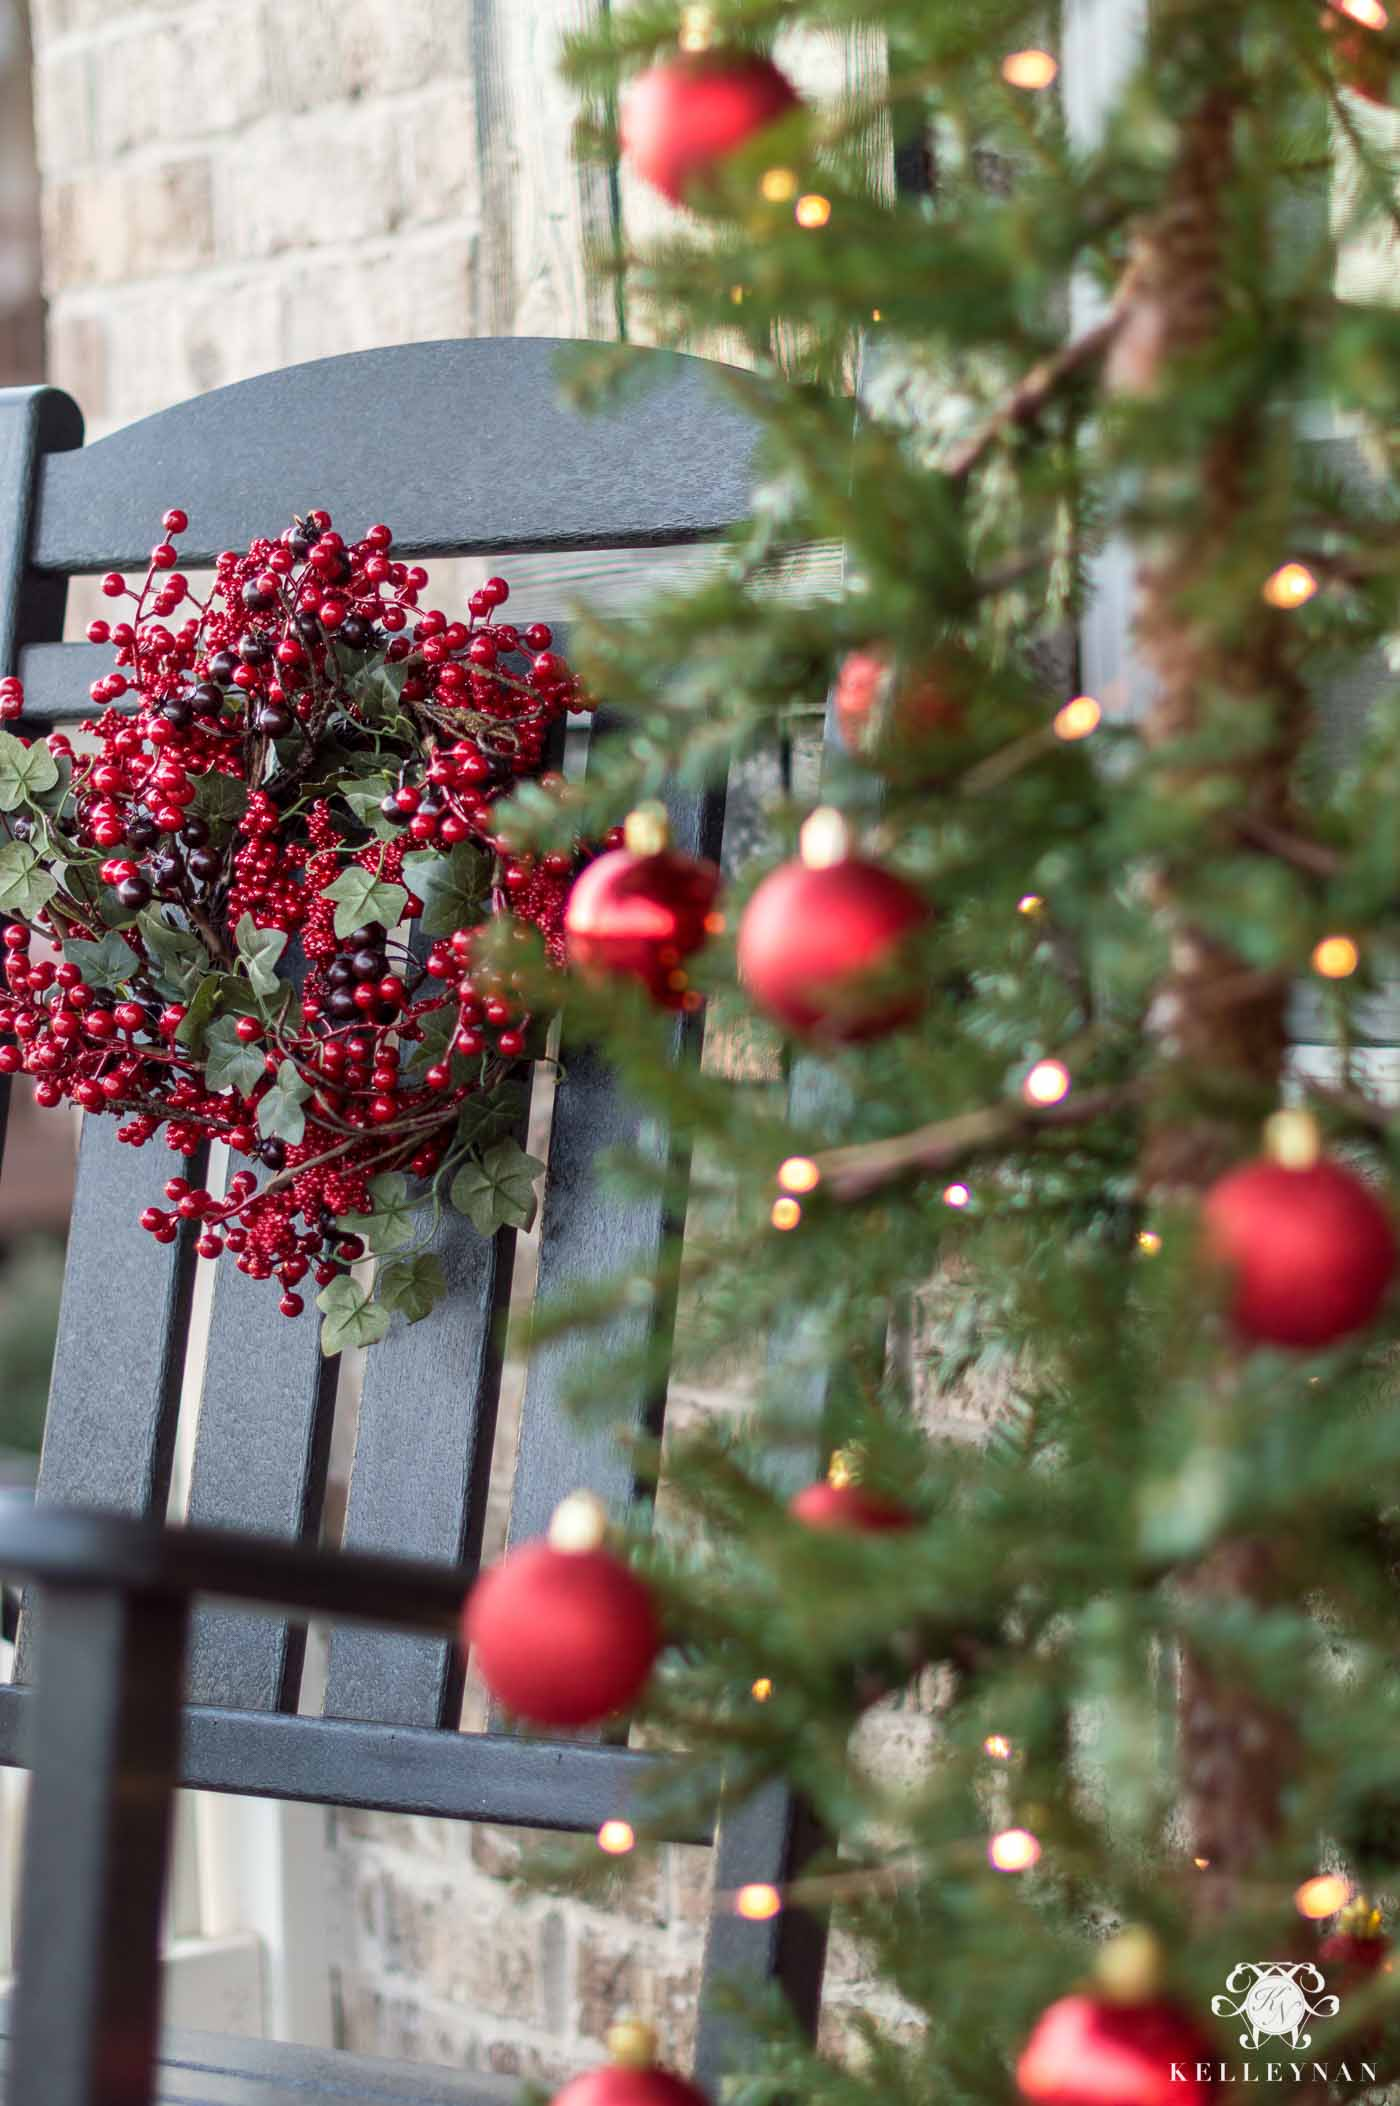 Front porch Christmas decorations and red berry wreaths on rocking chairs